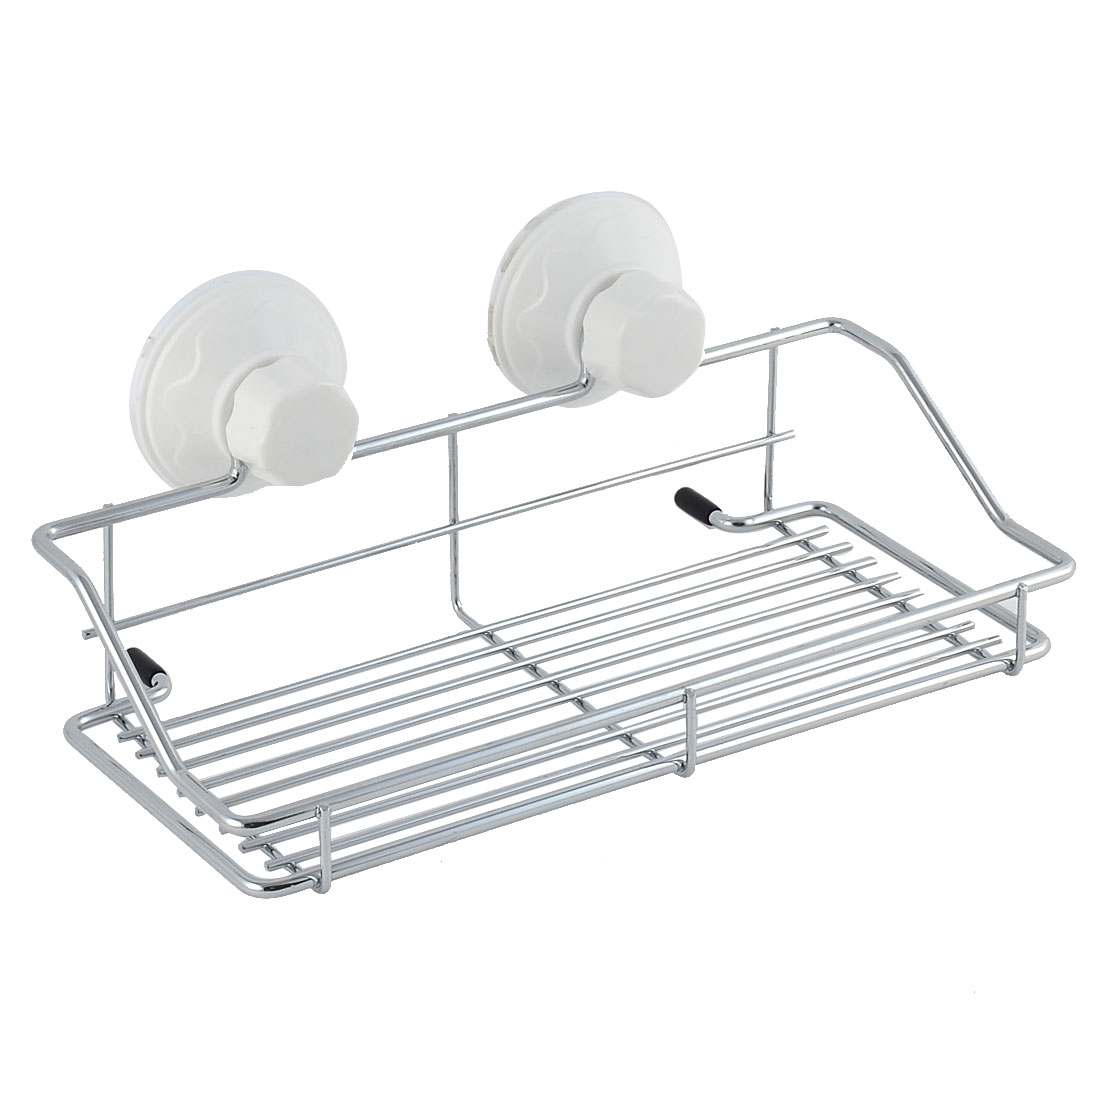 Household Bathroom Suction Cup Storage Shelf Holder Rack White Silver Tone